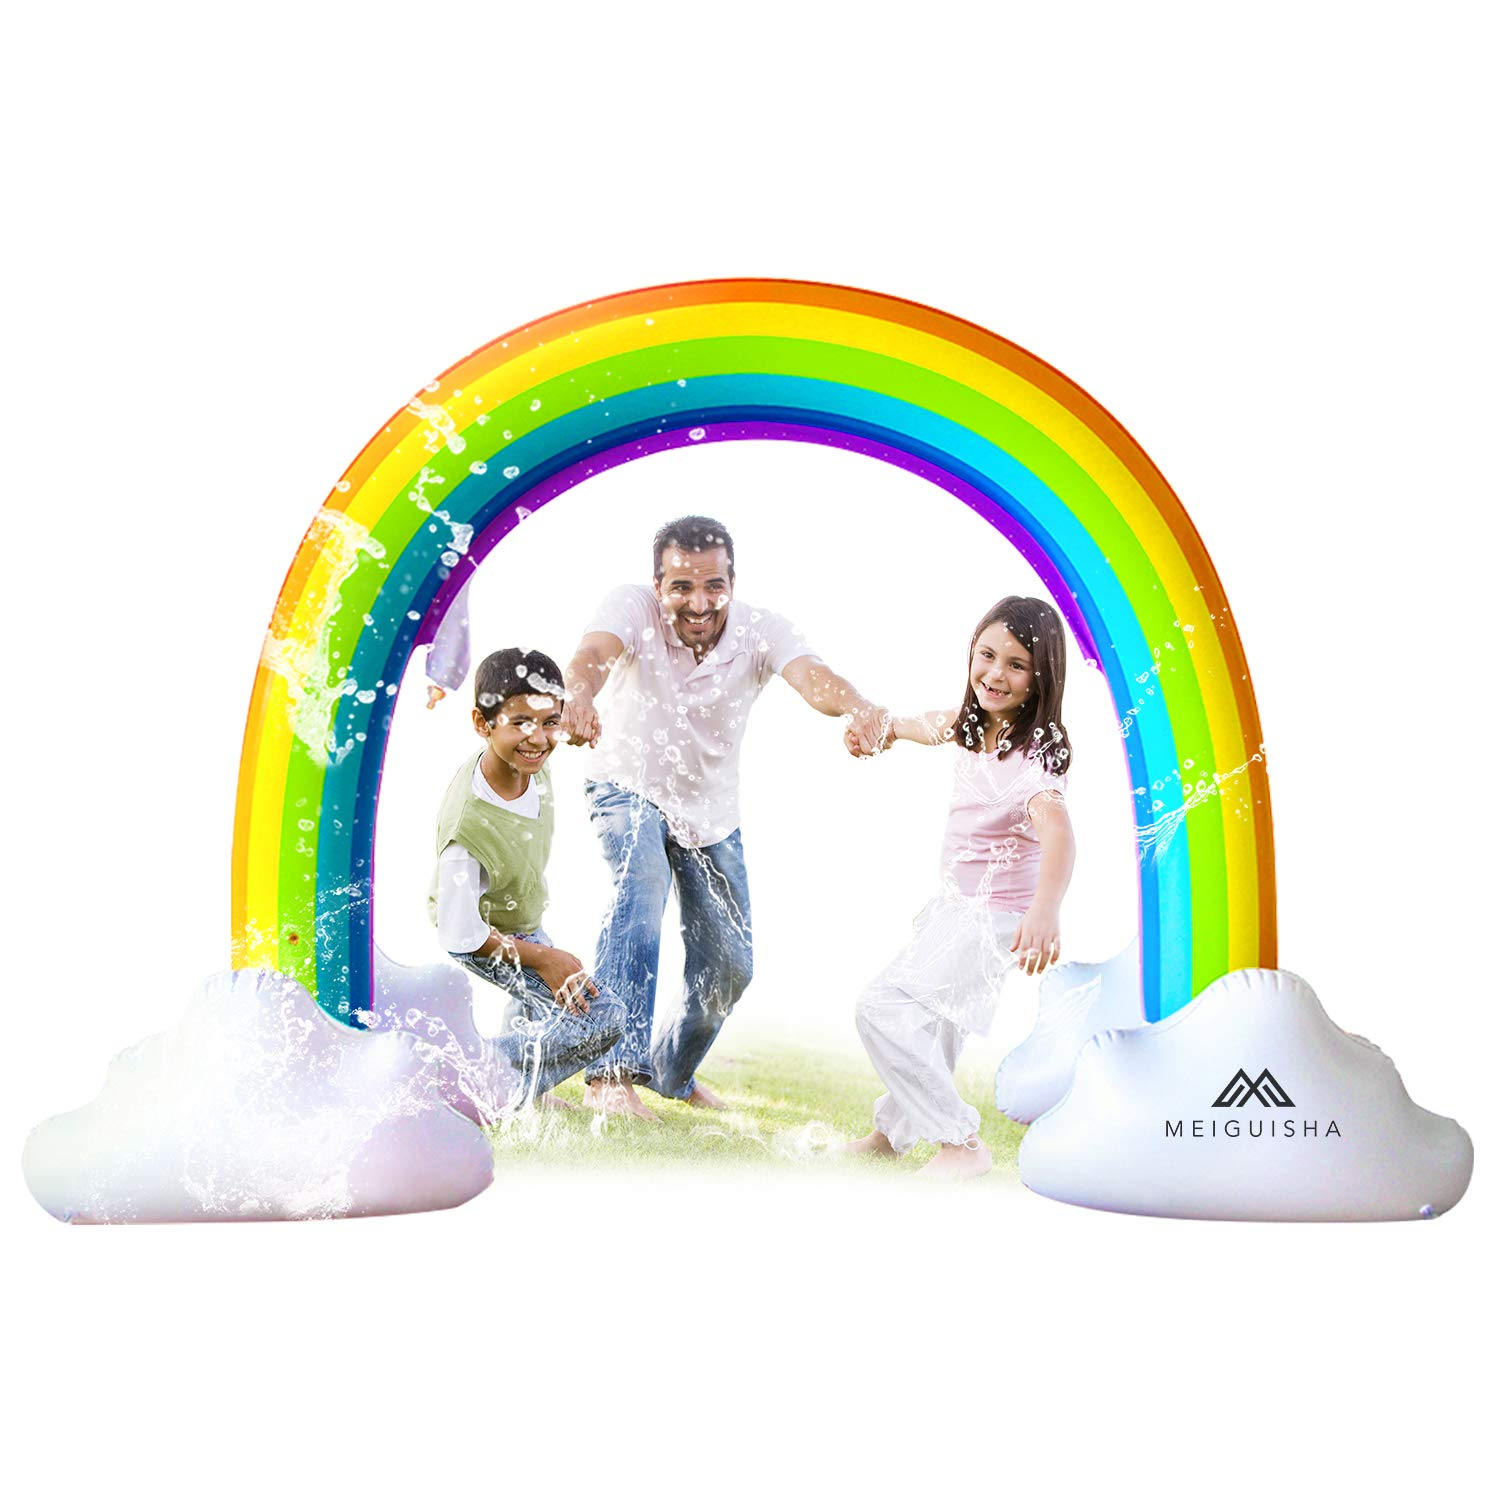 MeiGuiSha Inflatable Rainbow Yard Summer Sprinkler Toy, Over 6 Feet Long, Perfect for Summer Toy List by MeiGuiSha (Image #1)